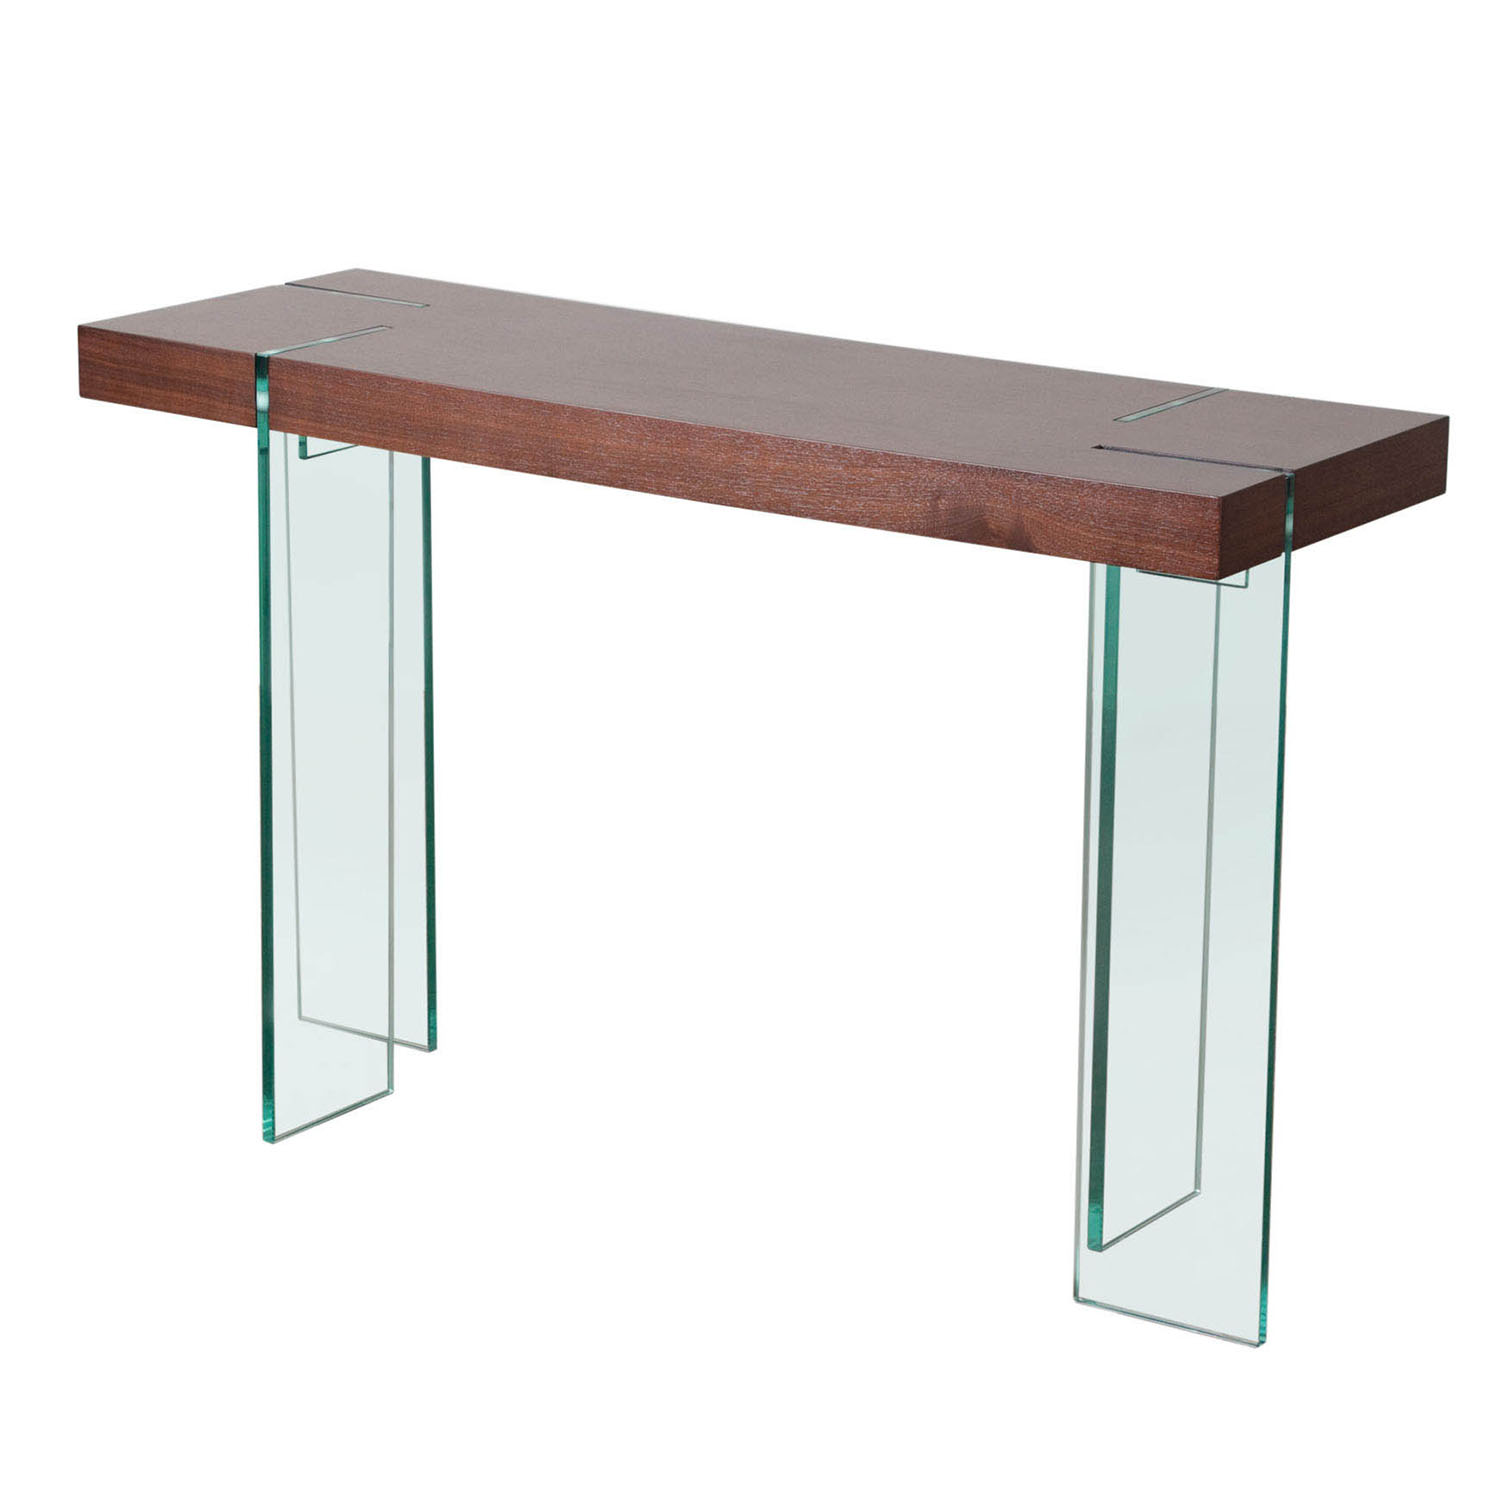 Exquisite Glass Leg Console Table Multiple Top Options Product Photo